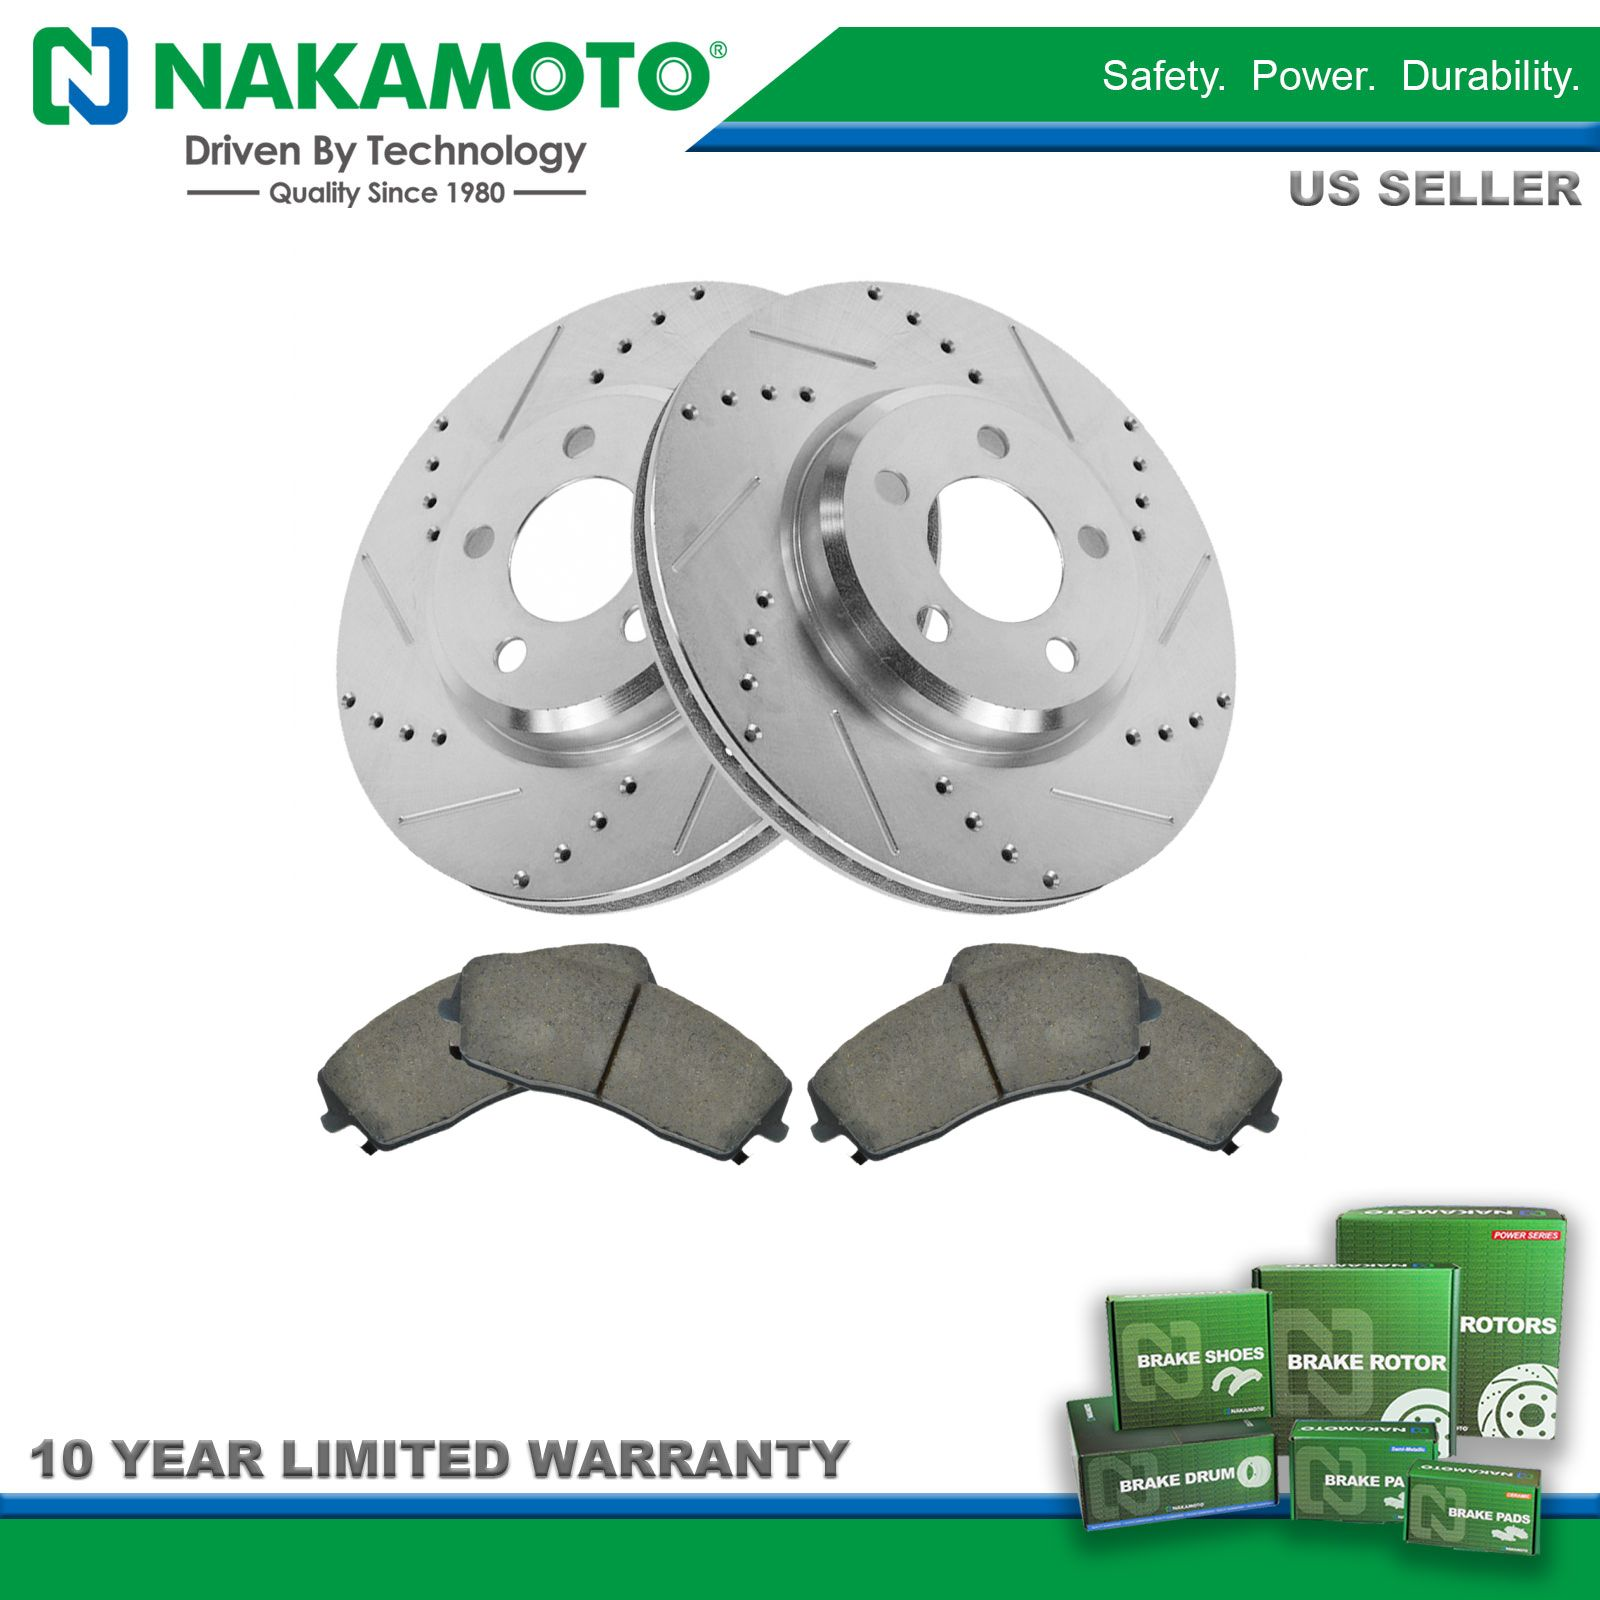 Nakamoto Rotor /& Brake Pad Ceramic Performance Drilled Slotted Rear Kit for Ford